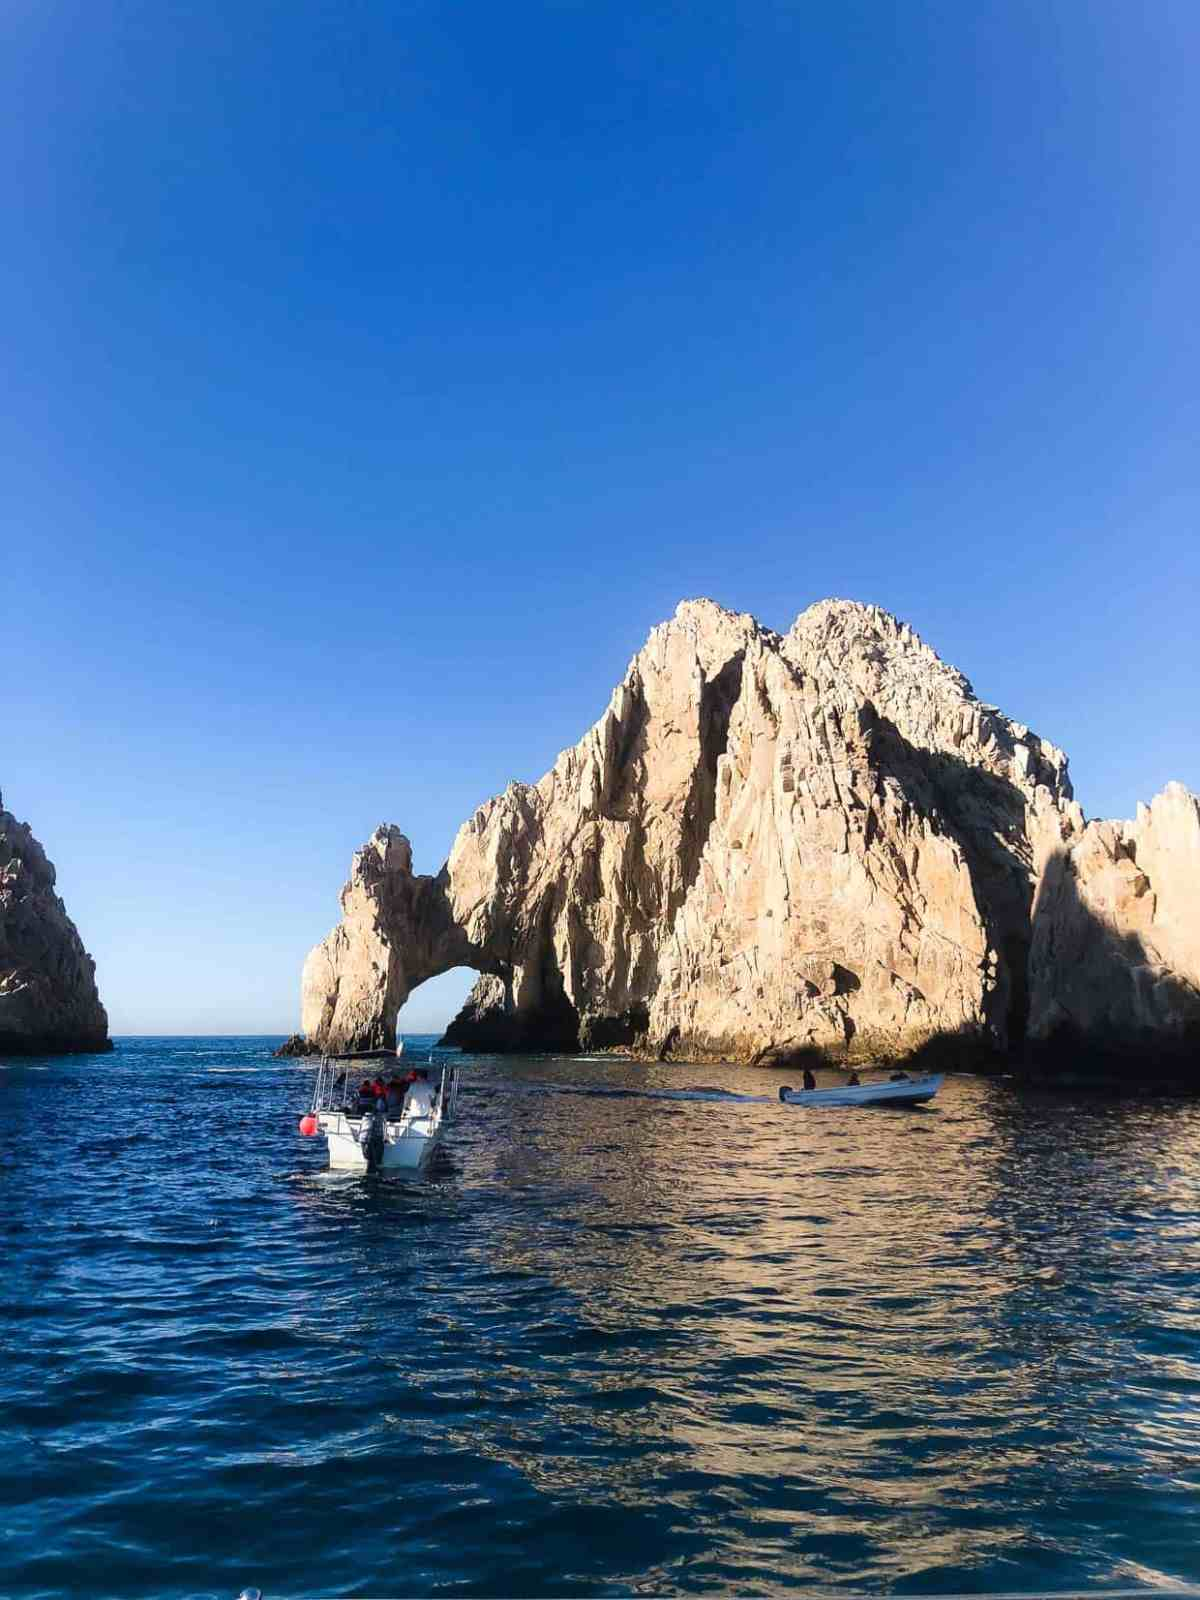 El Archo of Cabo San Lucas is one of many excursions in Mexico with Princess Cruises.